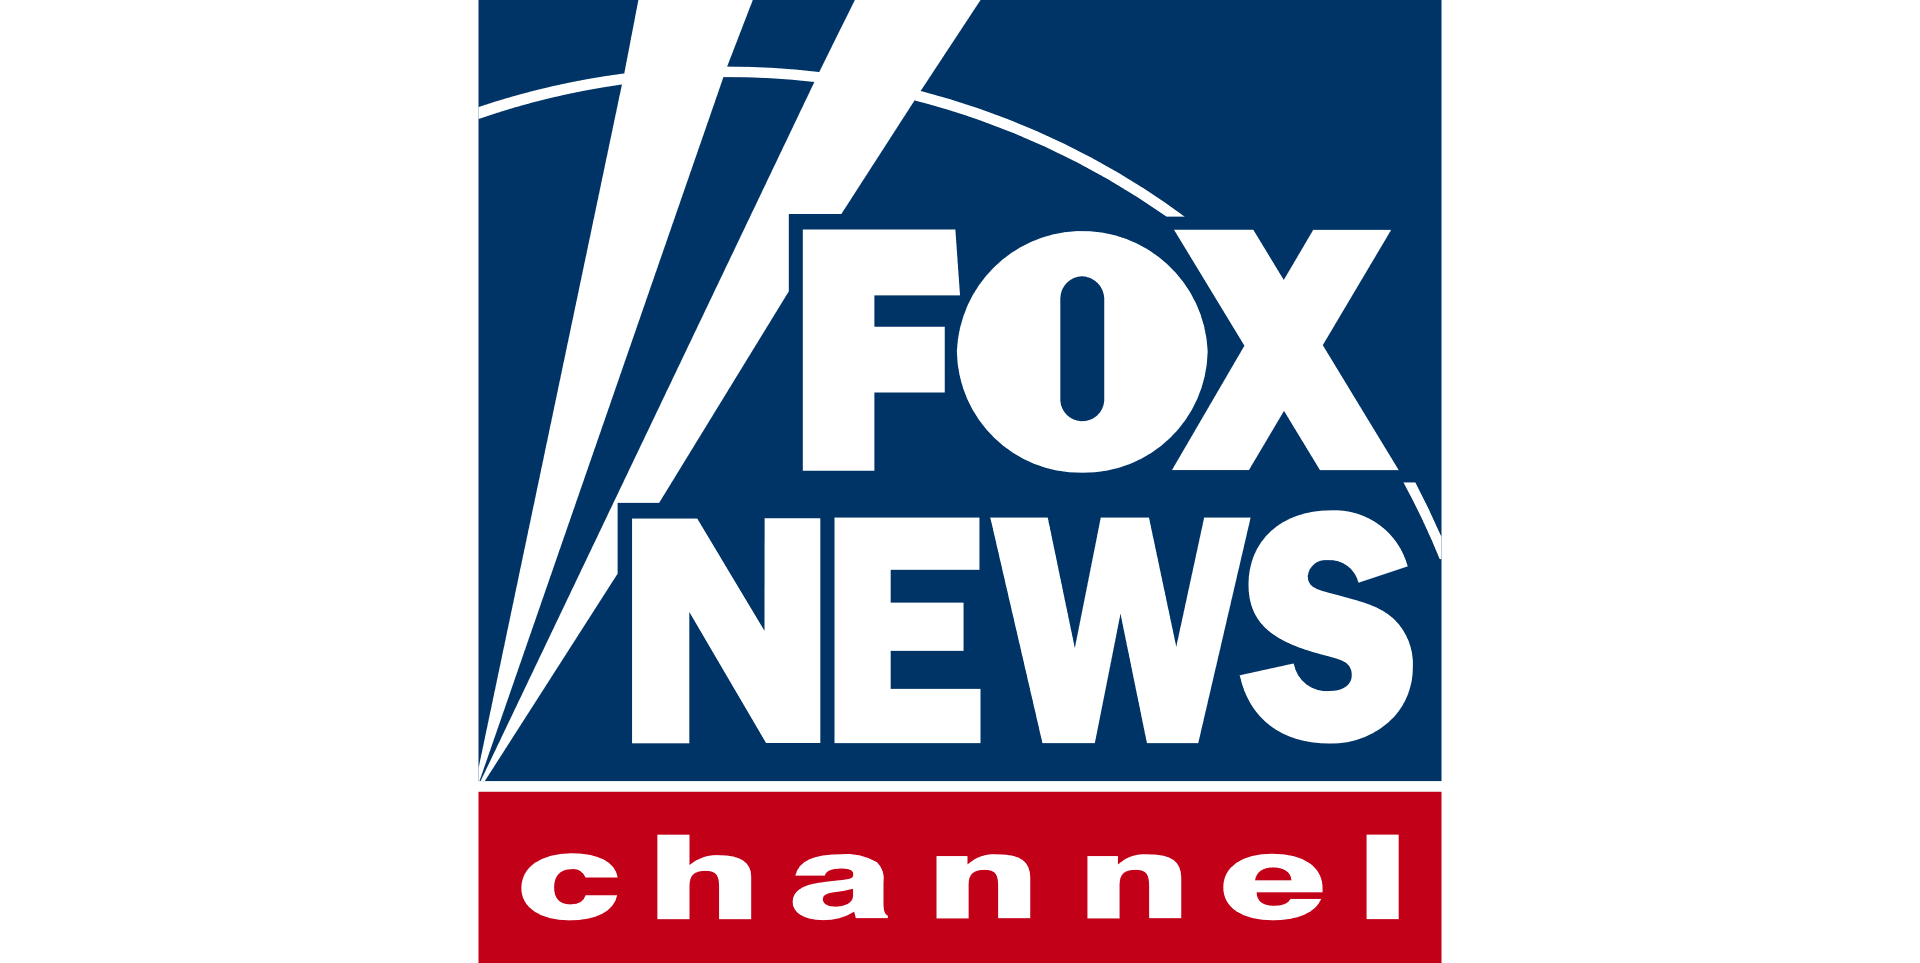 FOX-NEWS-CHANNEL_LOGO